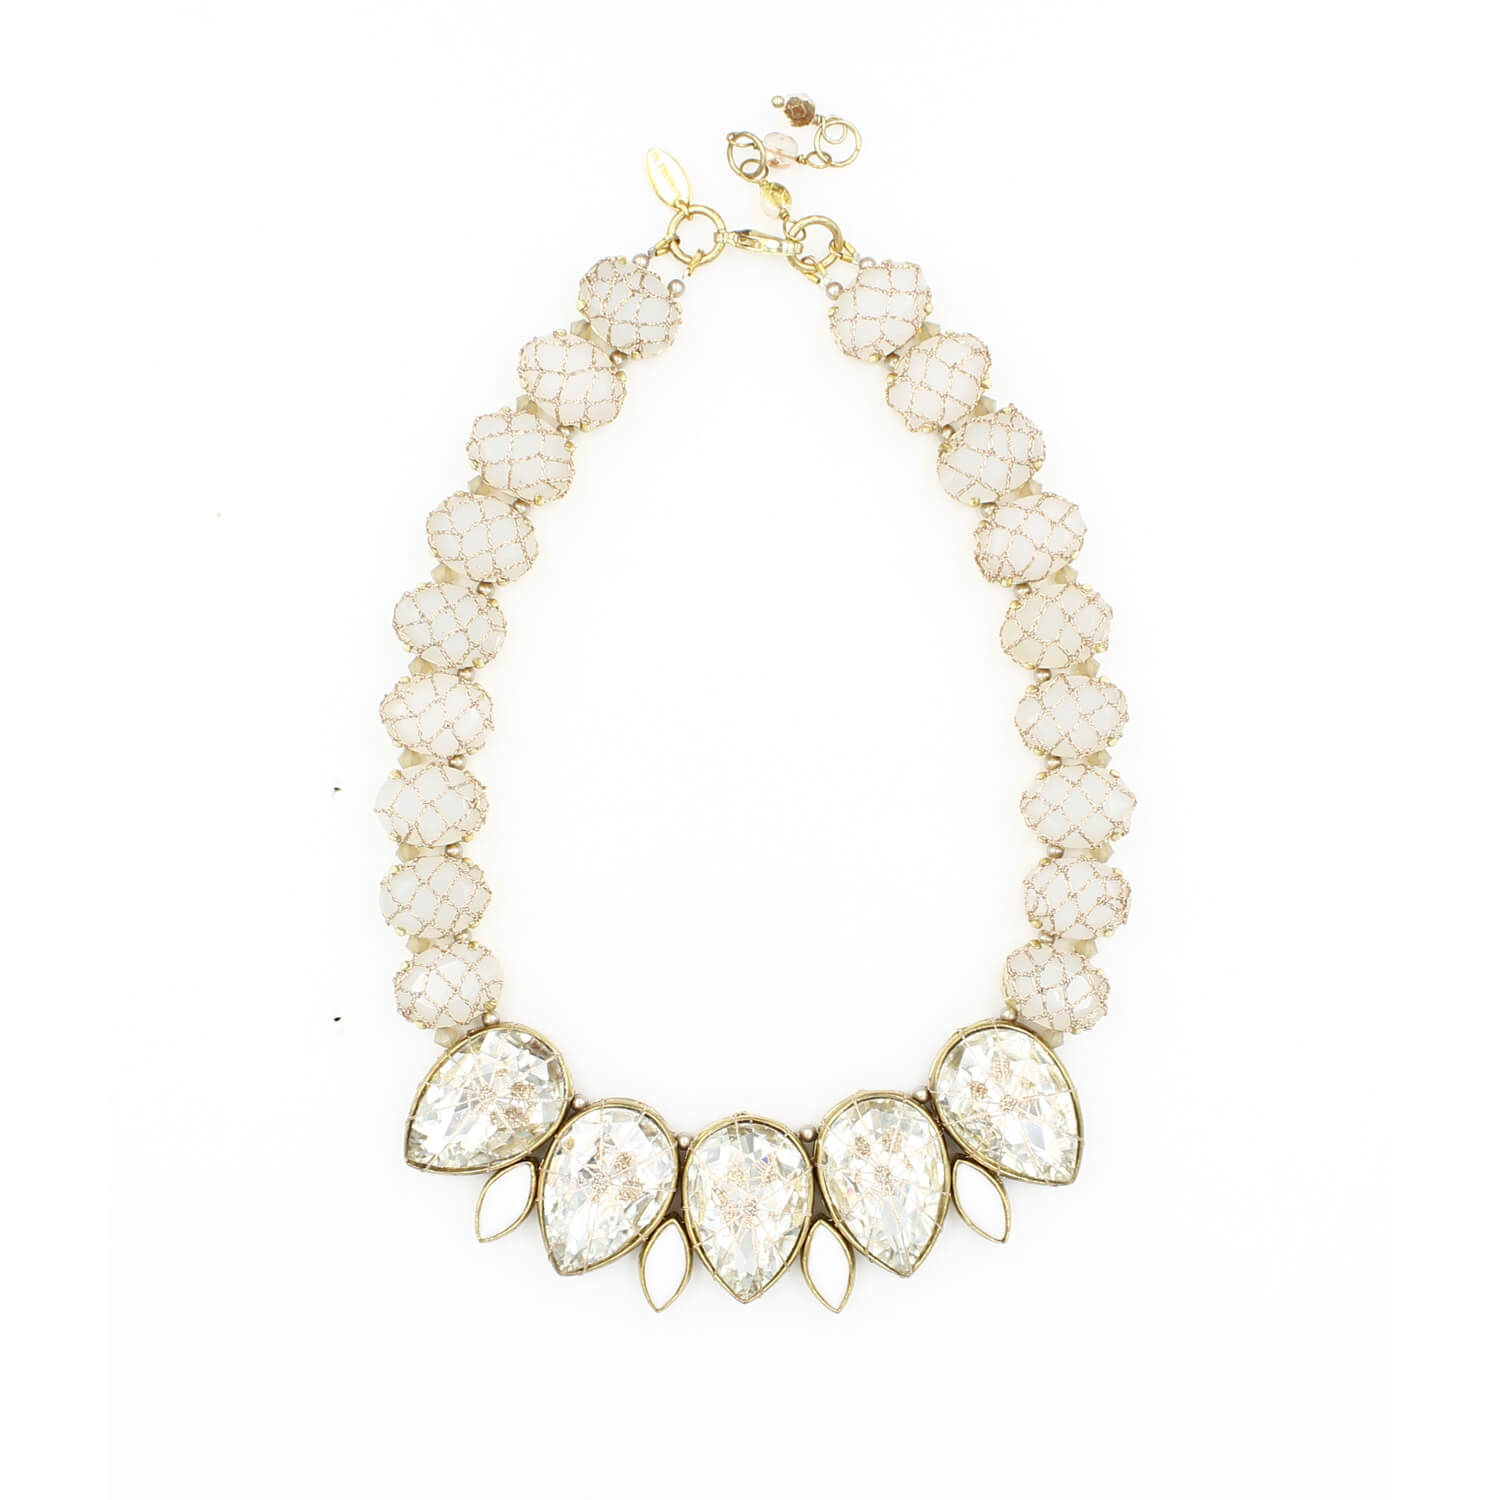 Frangipani Tears of Petals Crystal Necklace - Clear Opal